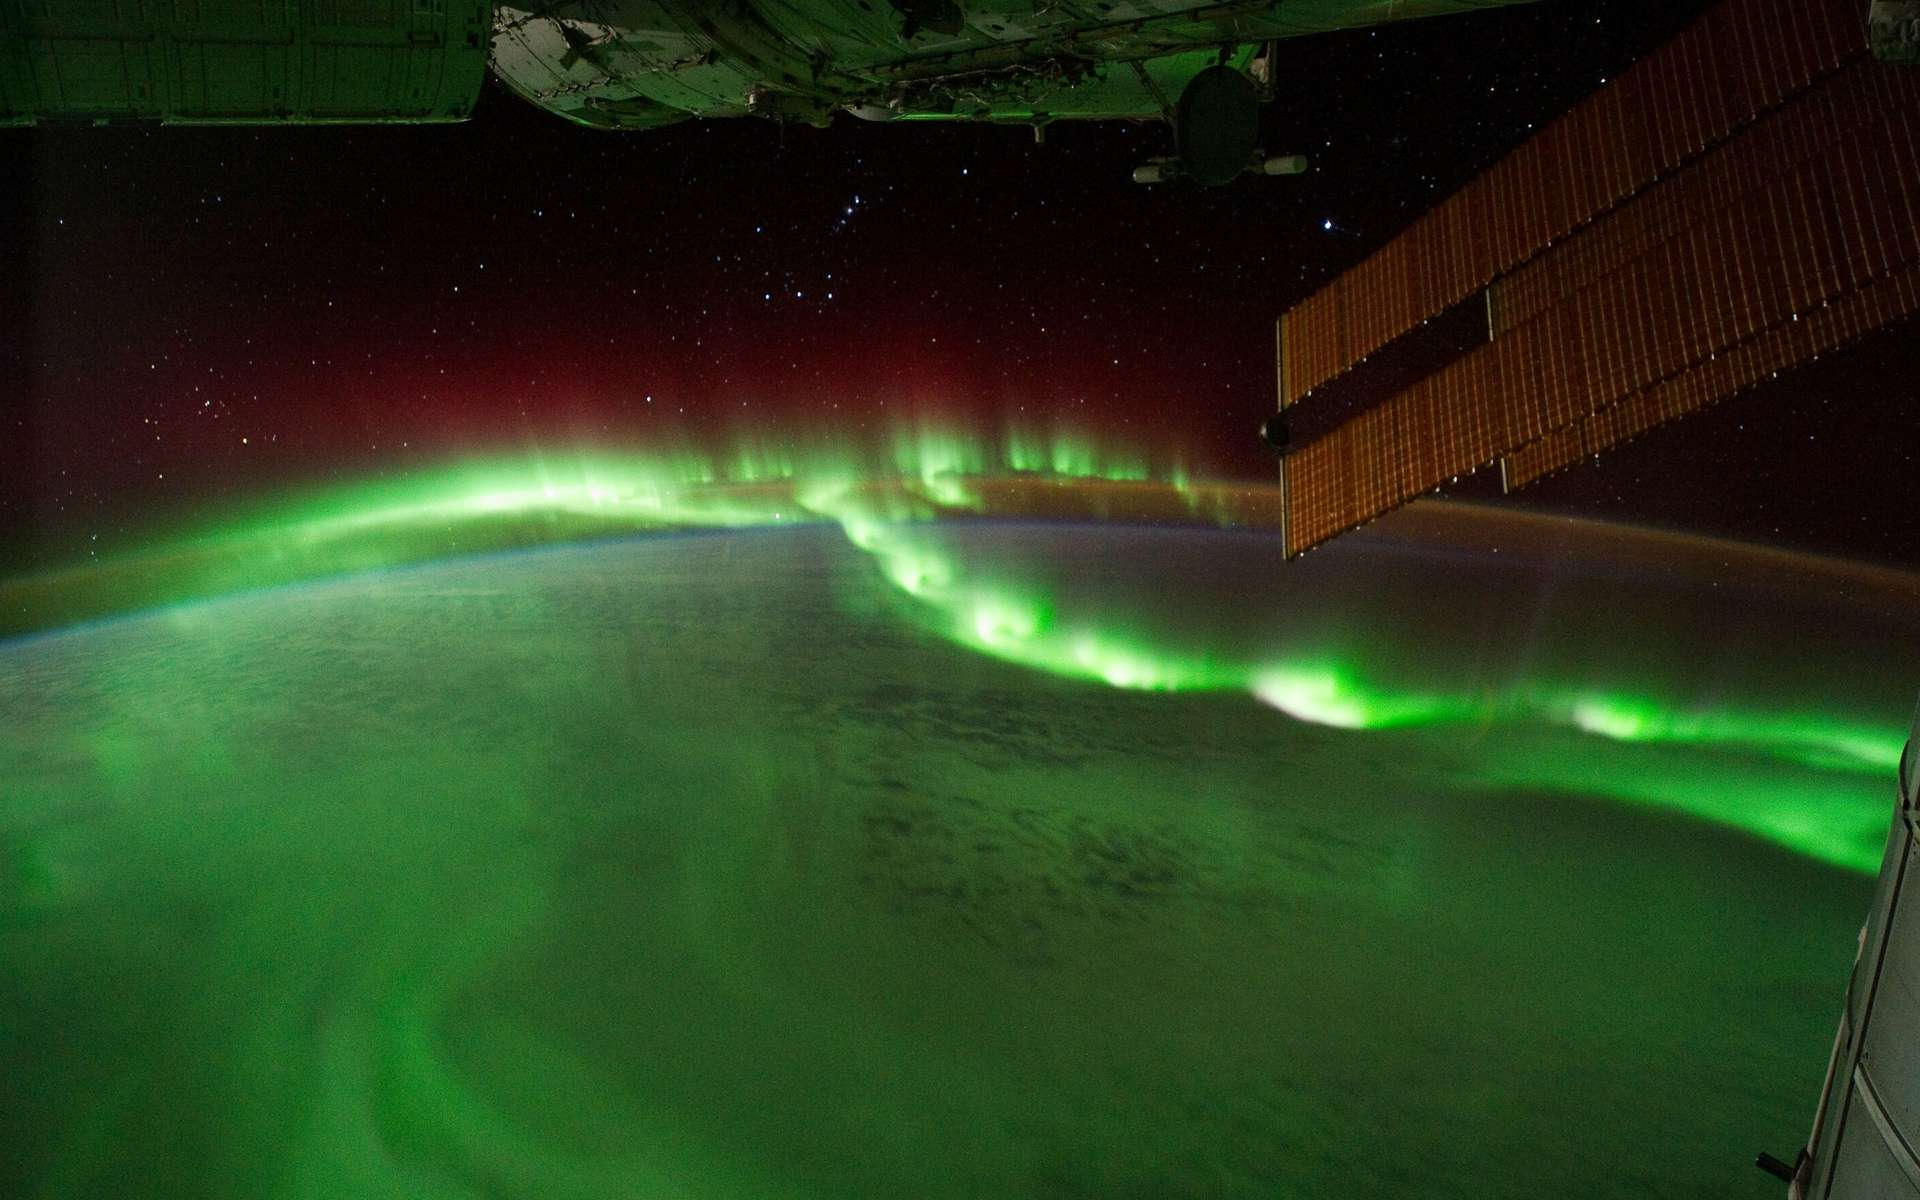 Perles aurorales vues de la Station spatiale internationale, le 17 septembre 2011. © Nasa